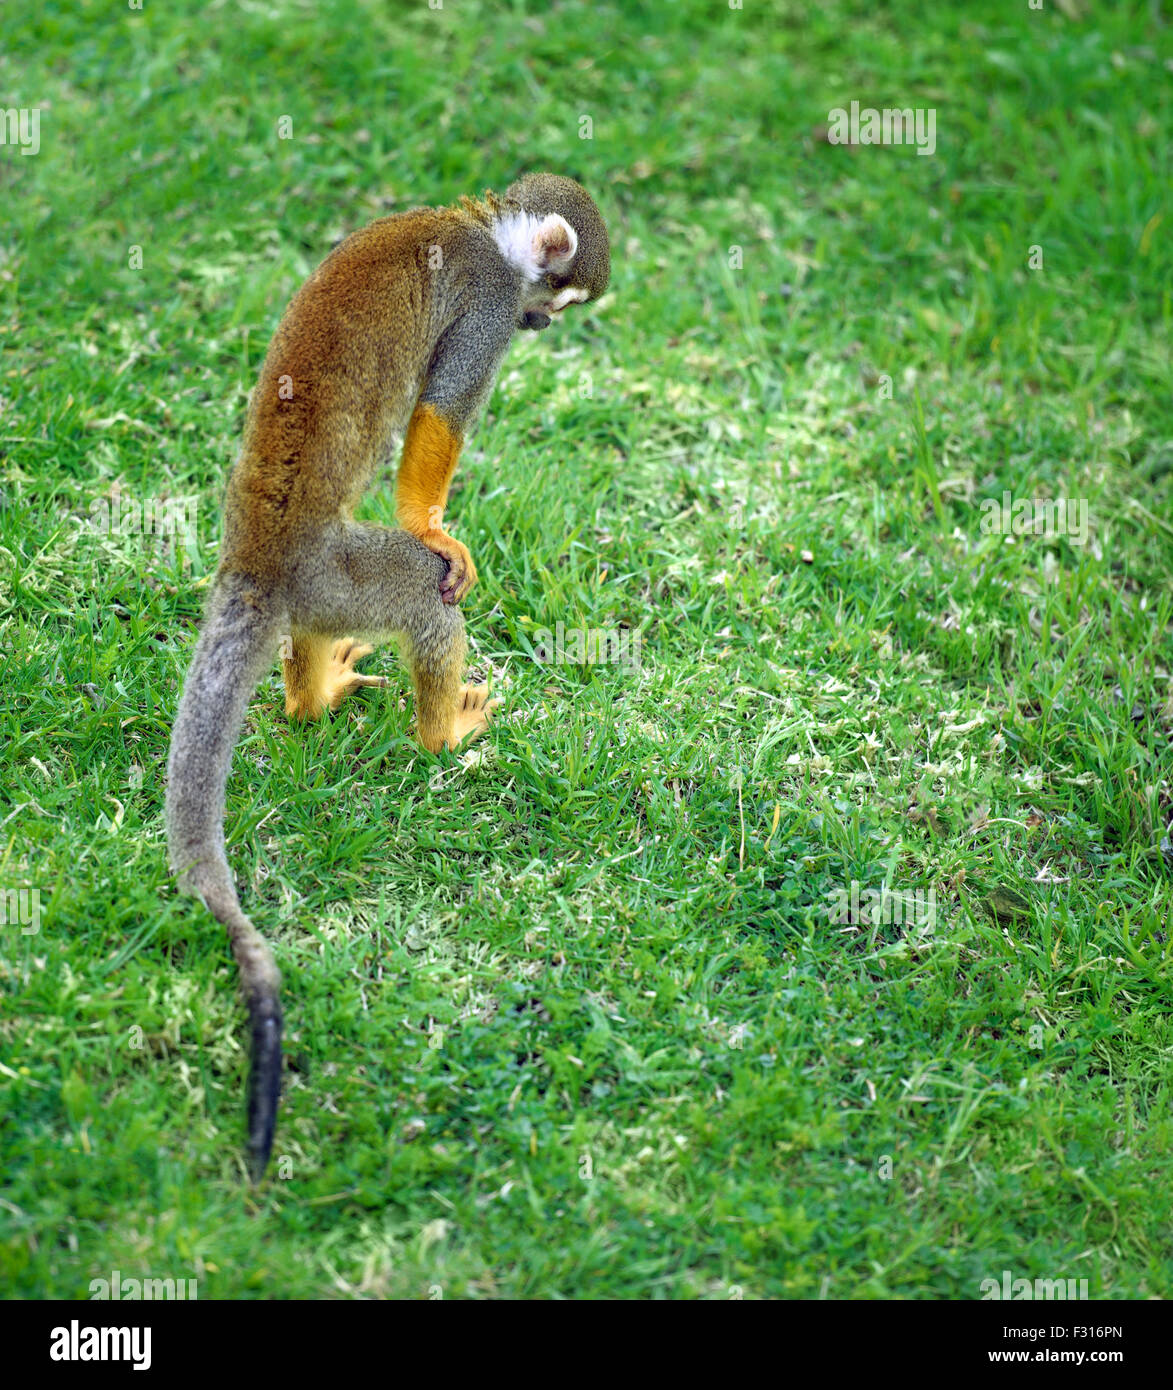 Squirrel monkey searching for something in the grass - Stock Image